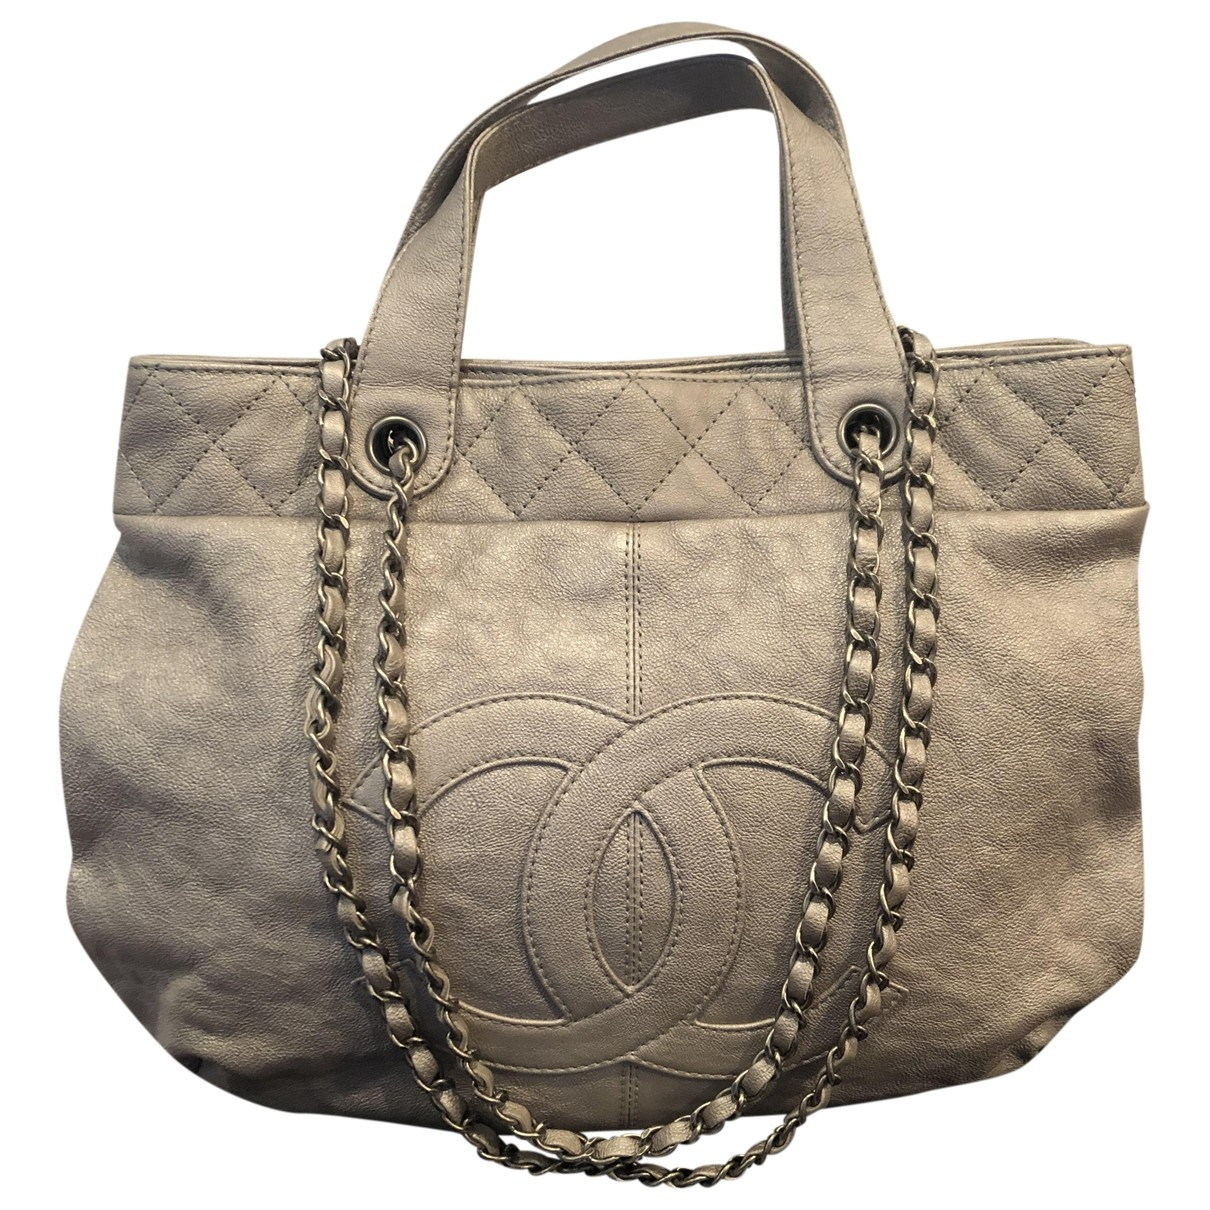 Chanel \N Silver Leather handbag for Women \N